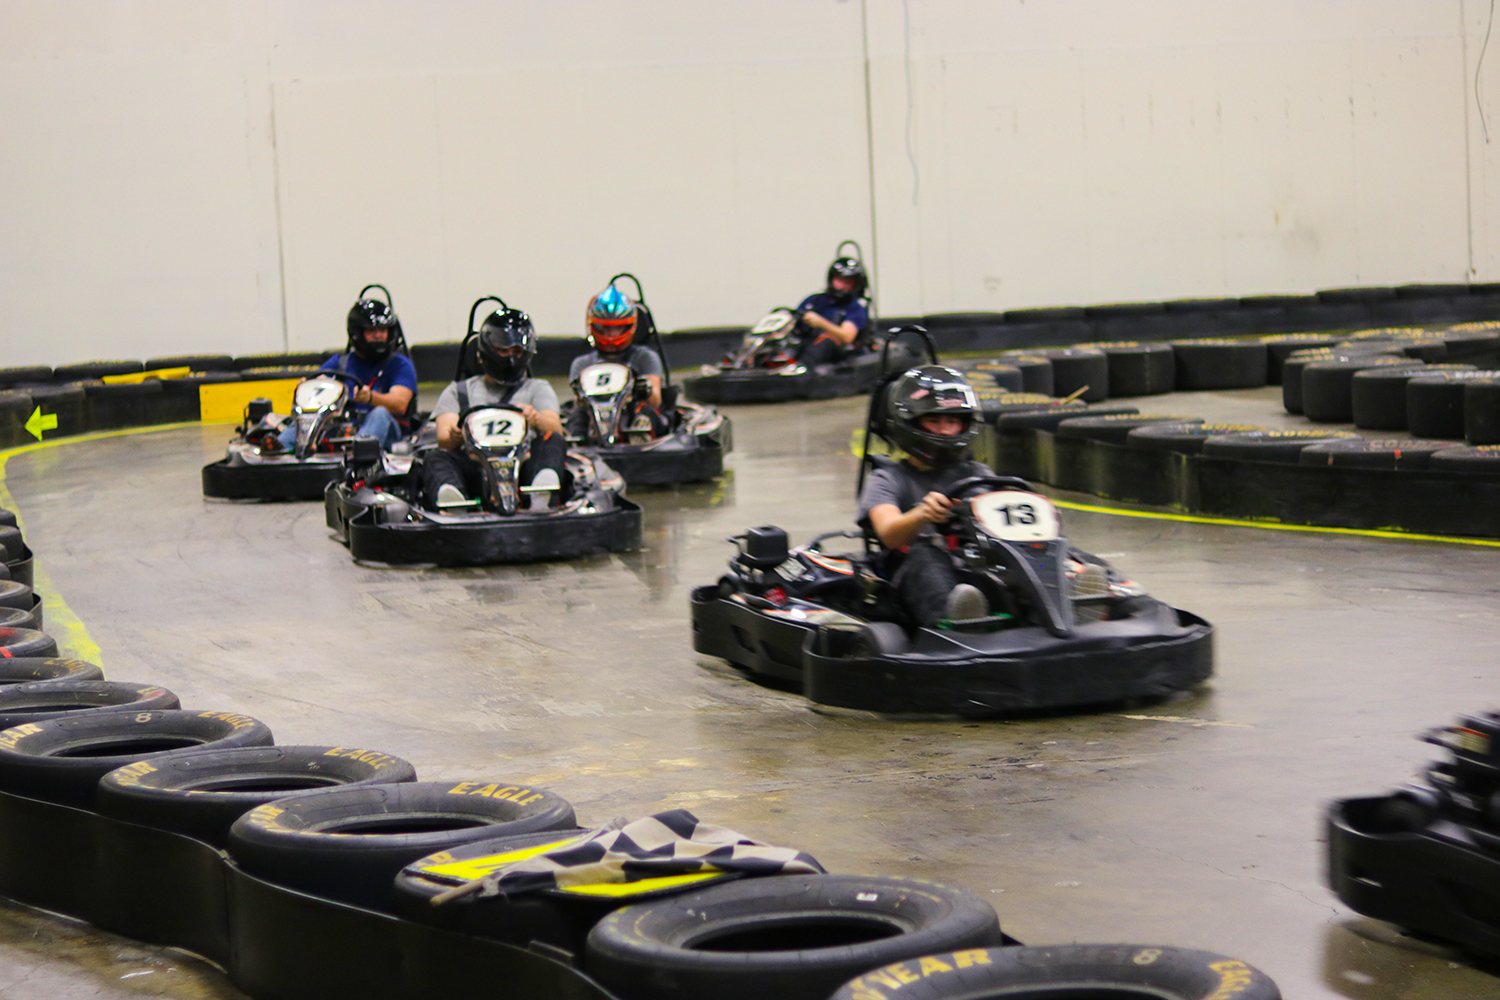 GROUP BENEFITS - Special group rates over individual racingEvent planning assistance to ensure a succesful outingMeeting spaces, large screen televisions, and gamesThe comfort of indoors (weather is never an issue)The unique experience of racing in a fun and safe environment